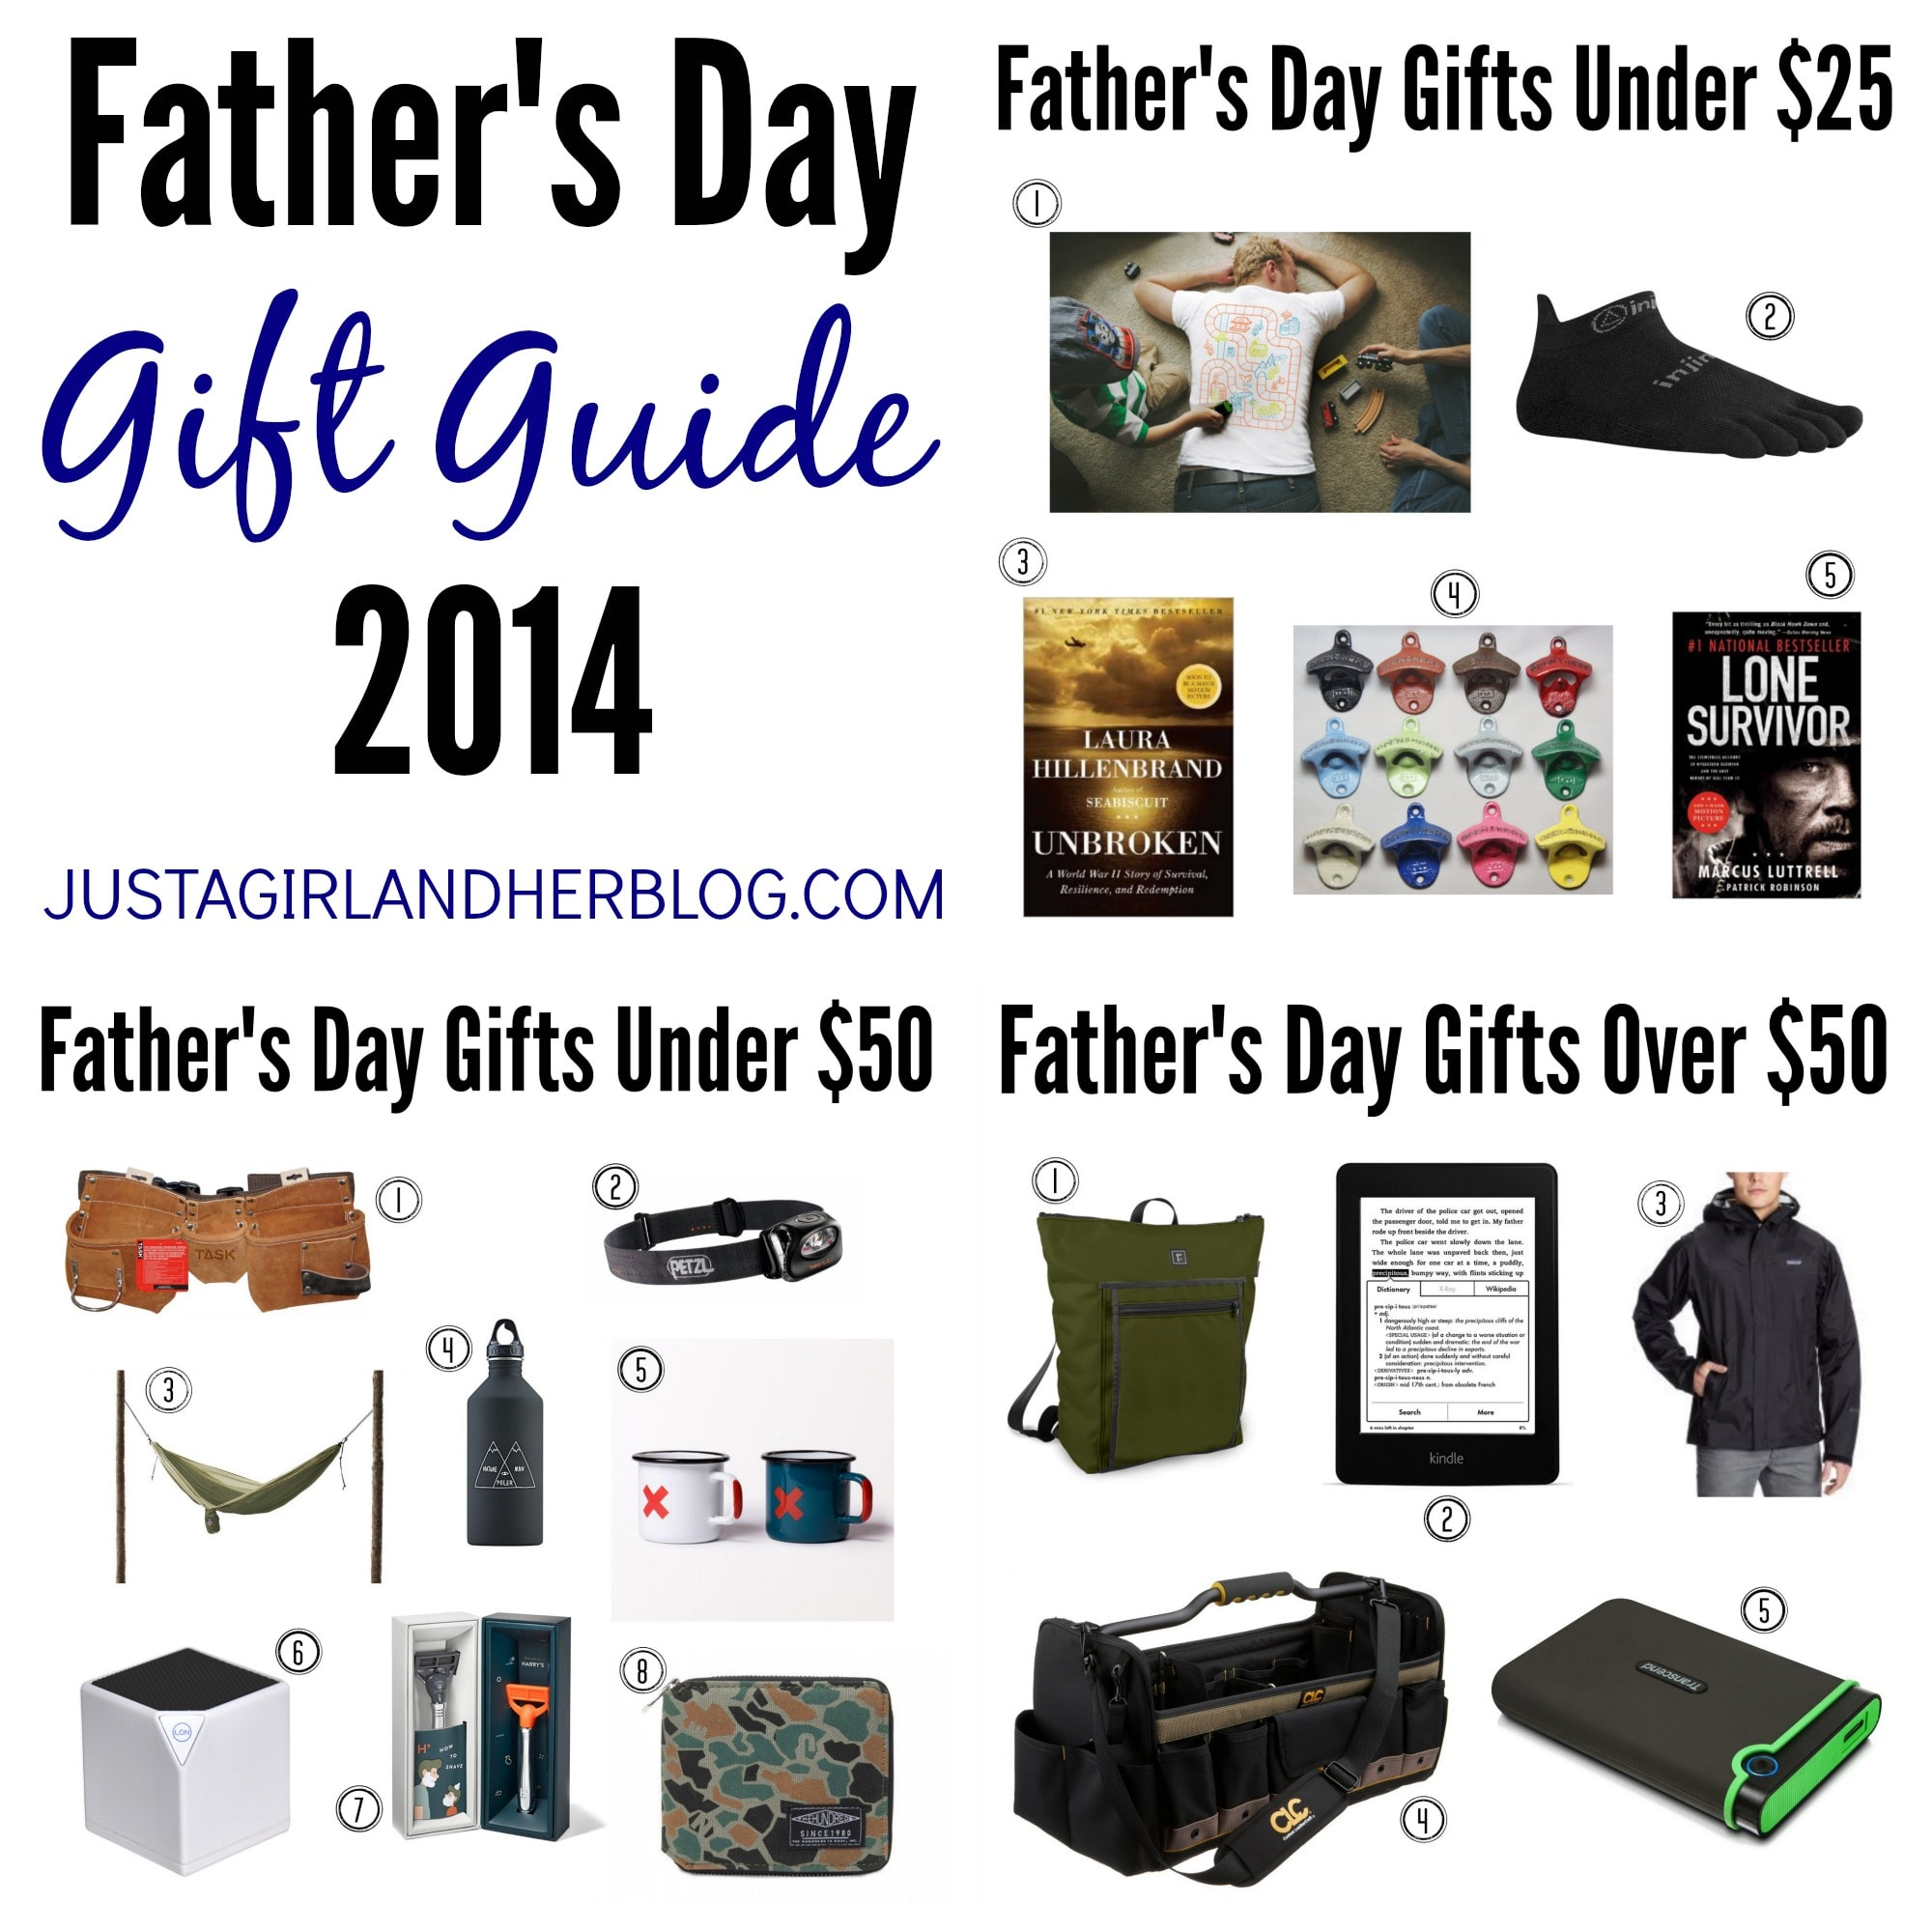 Father's Day Gift Guide 2014 - Just a Girl and Her Blog